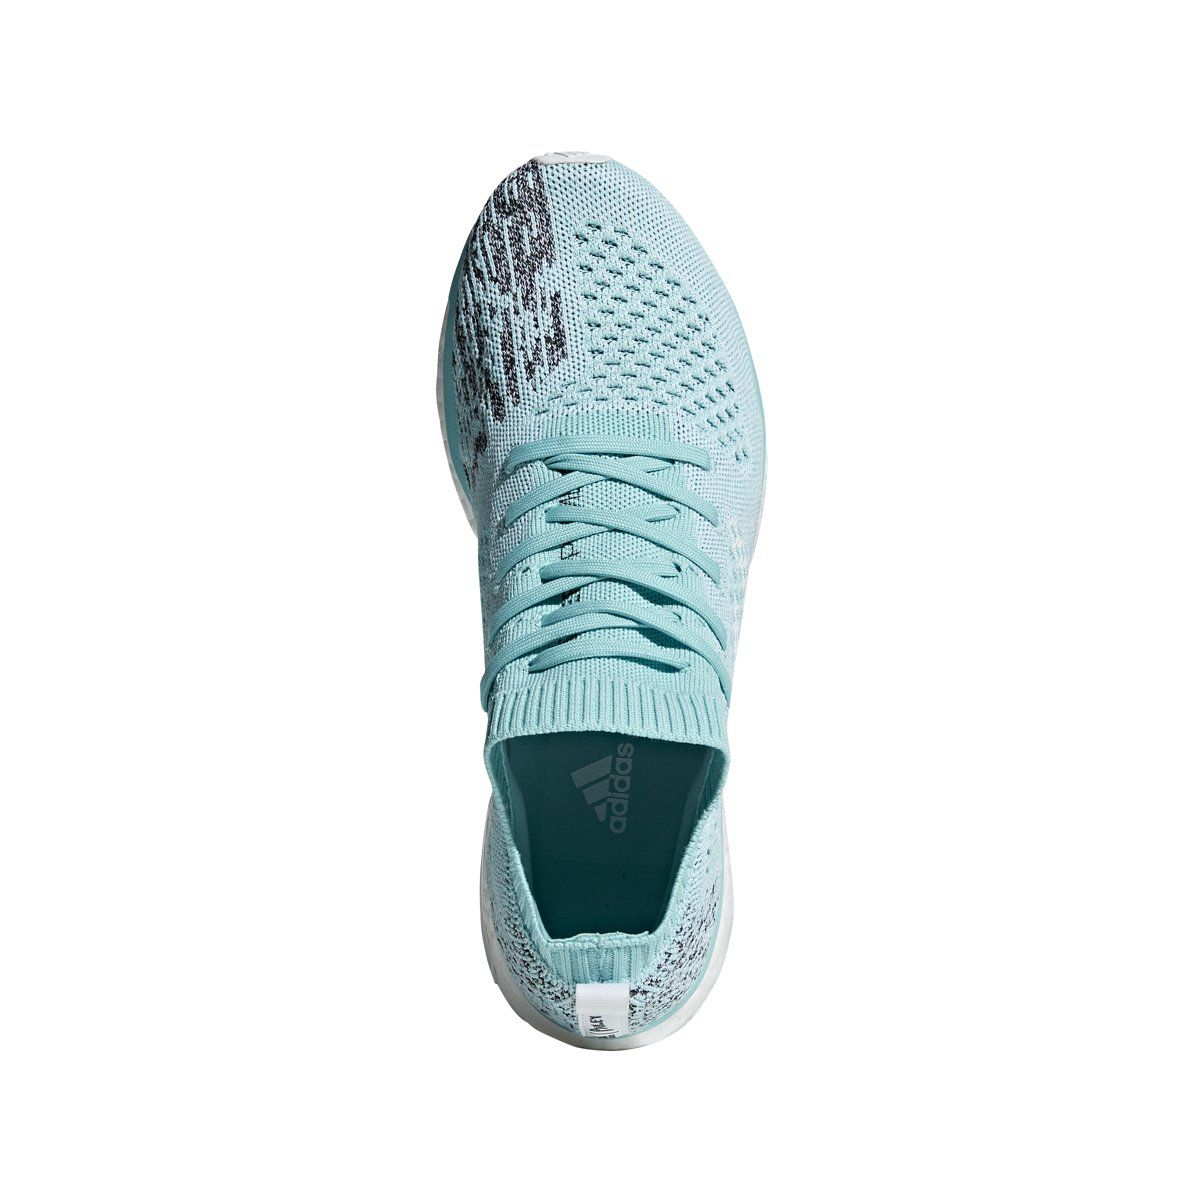 adidas Mens Adizero Prime LTD Blue Spirit White Carbon AQ0201 Size  10.5      See this great product-affiliate link.  adidaswomensrunningshoes 2f66f36d5